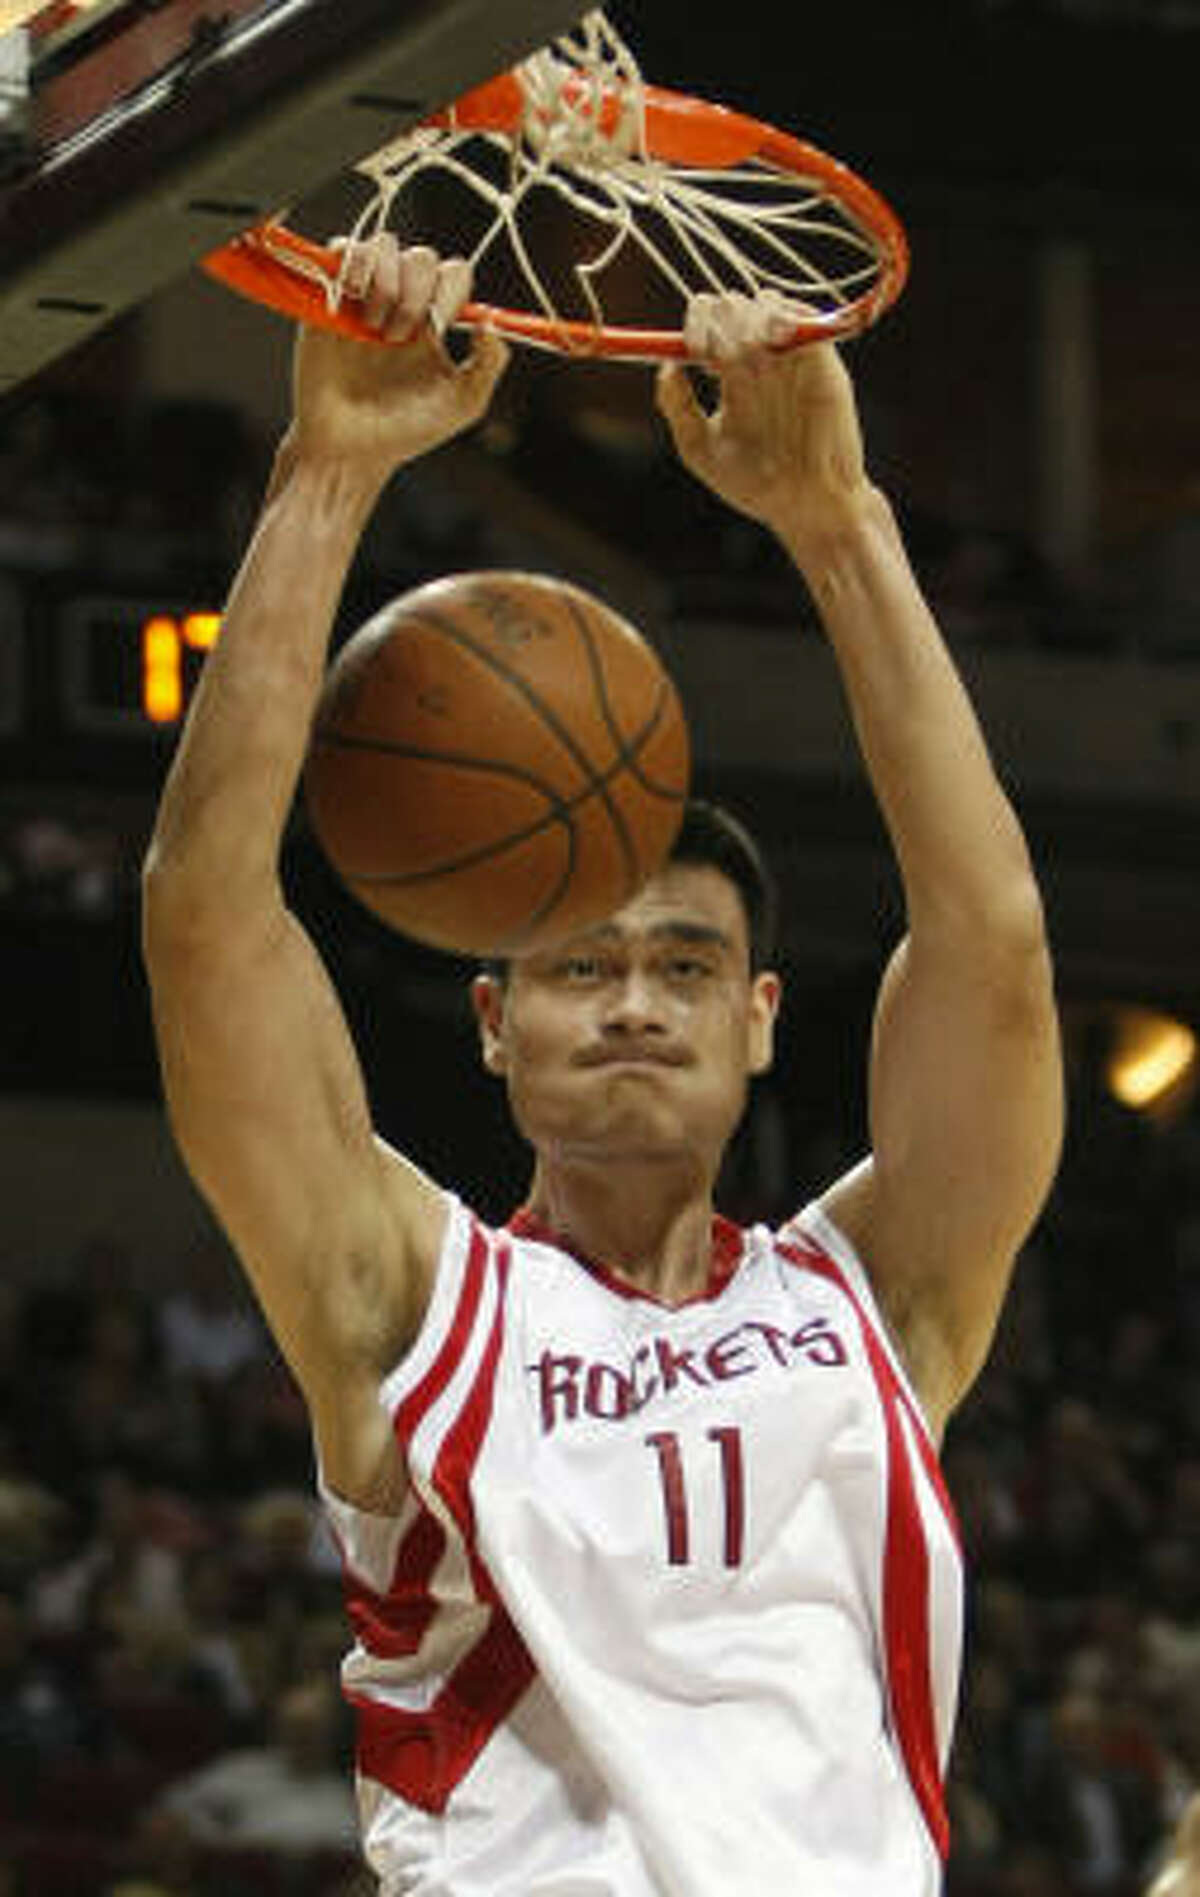 Yao Ming, who scored 26 points on 12-of-12 shooting, dunks during the first quarter.